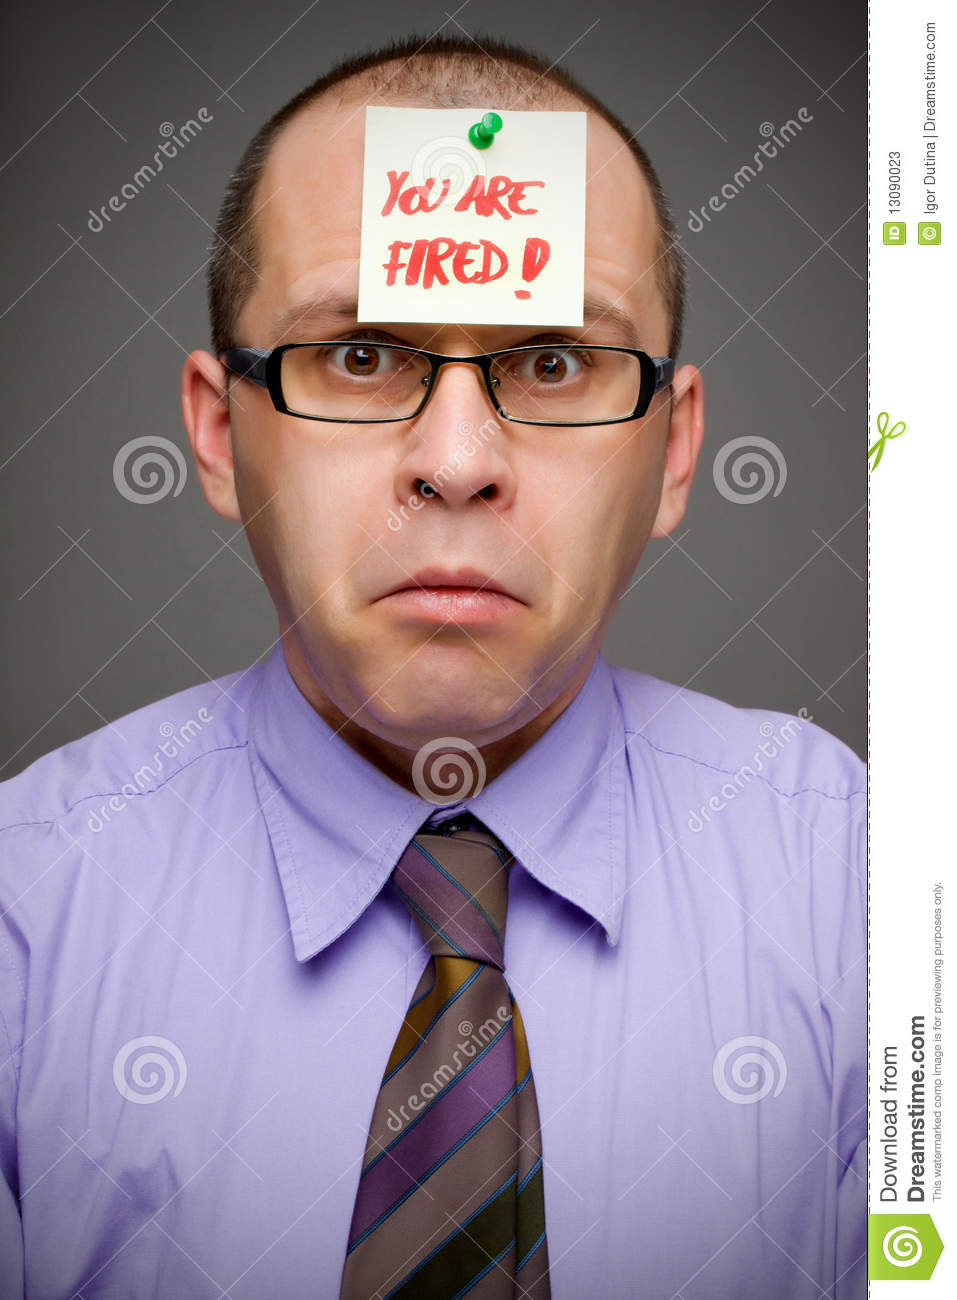 Fired From Job Stock Photos - Image: 13090023